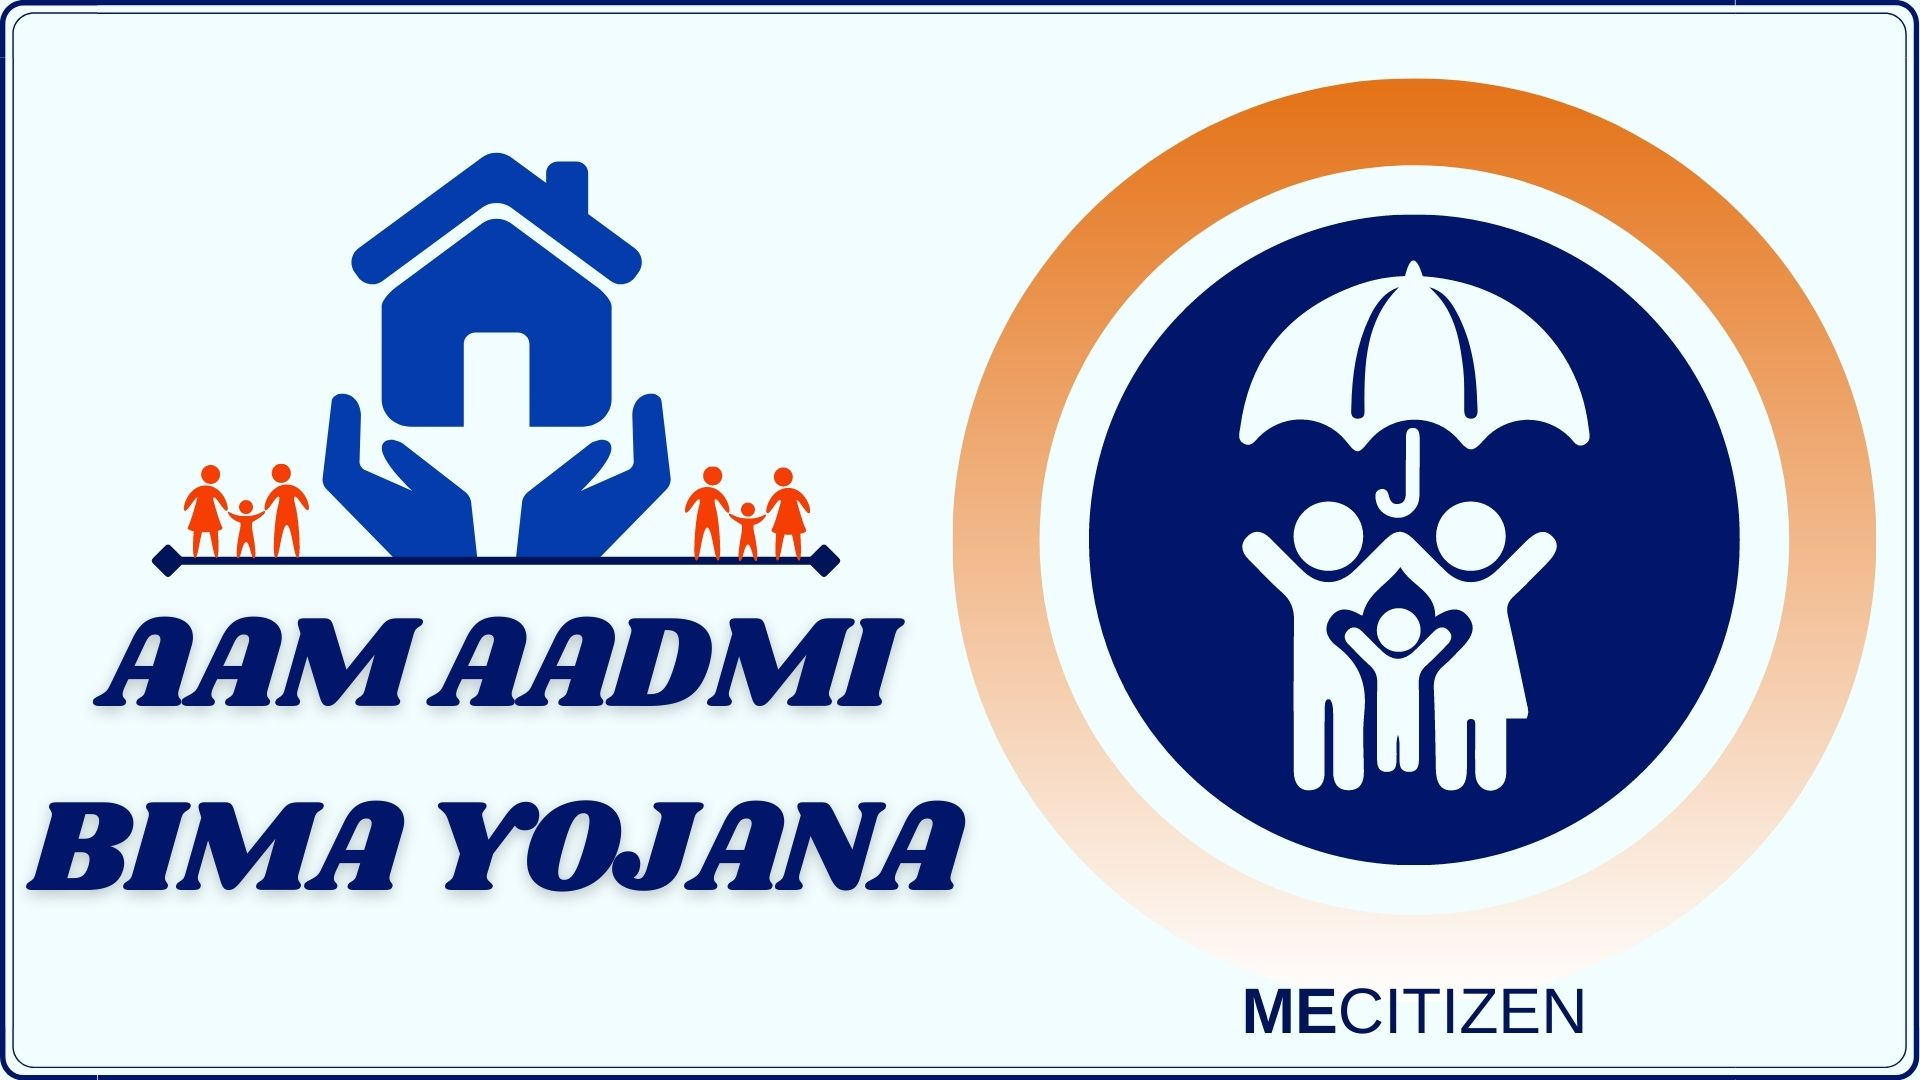 What Is Aam Aadmi Bima Yojana (AABY)?